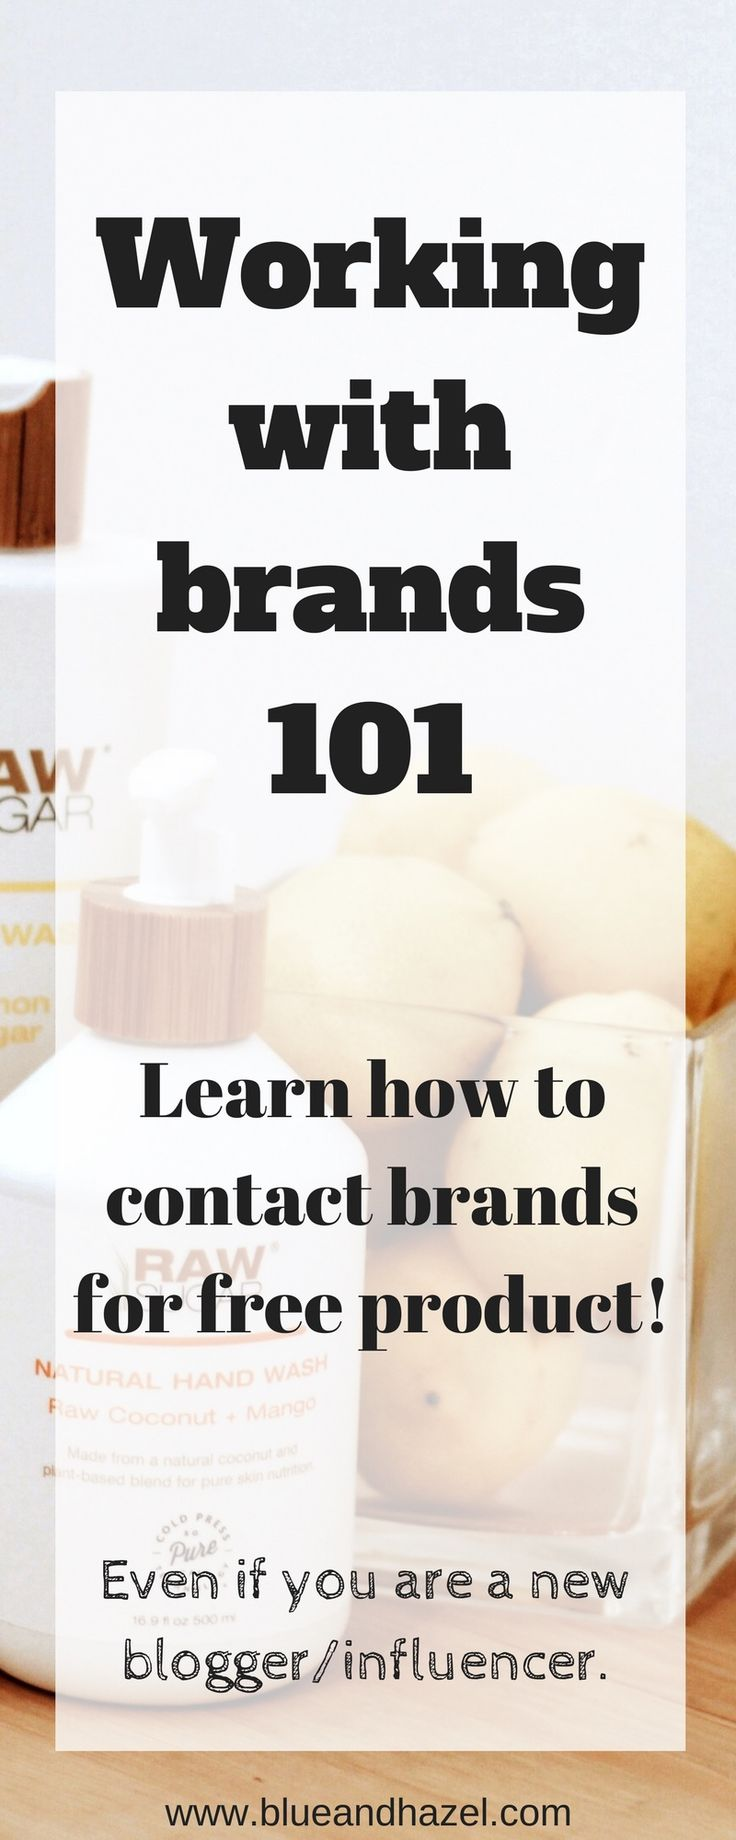 As a new blogger/influencer it was hard to learn how to start working with brands / collaborating. I started working with brands as a new blogger for free product saving me thousands of dollars!  Learn how to contact brands, what is expected, and how to get started, and see real pitches that landed me collabs! #workingwithbrands #blueandhazel #collaborate #momblog